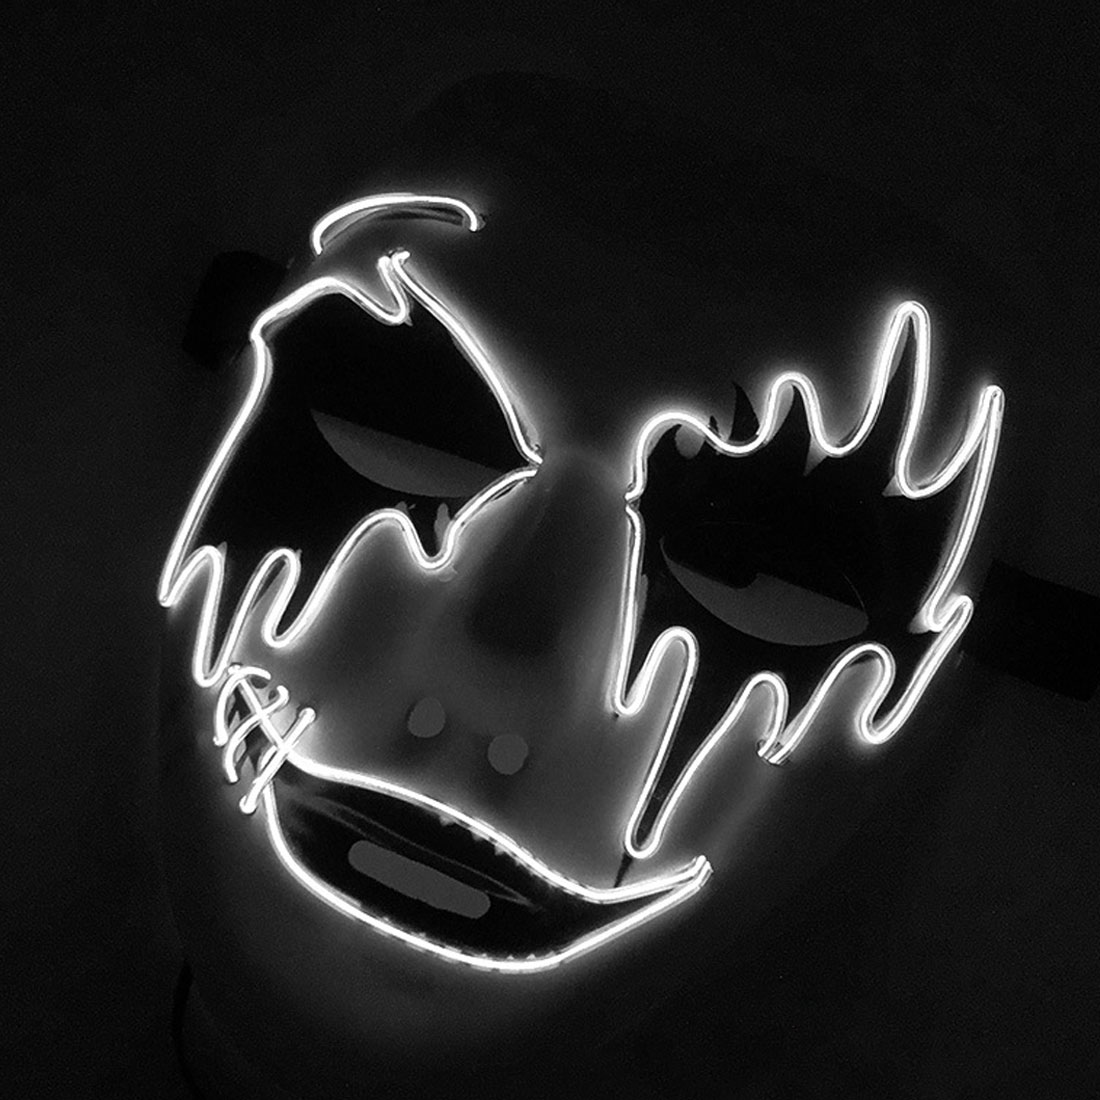 Mask 3 Type Led Light Up Masks The Purge Election Year Great Festival Cosplay Costume Supplies Party Glow In Dar From Home